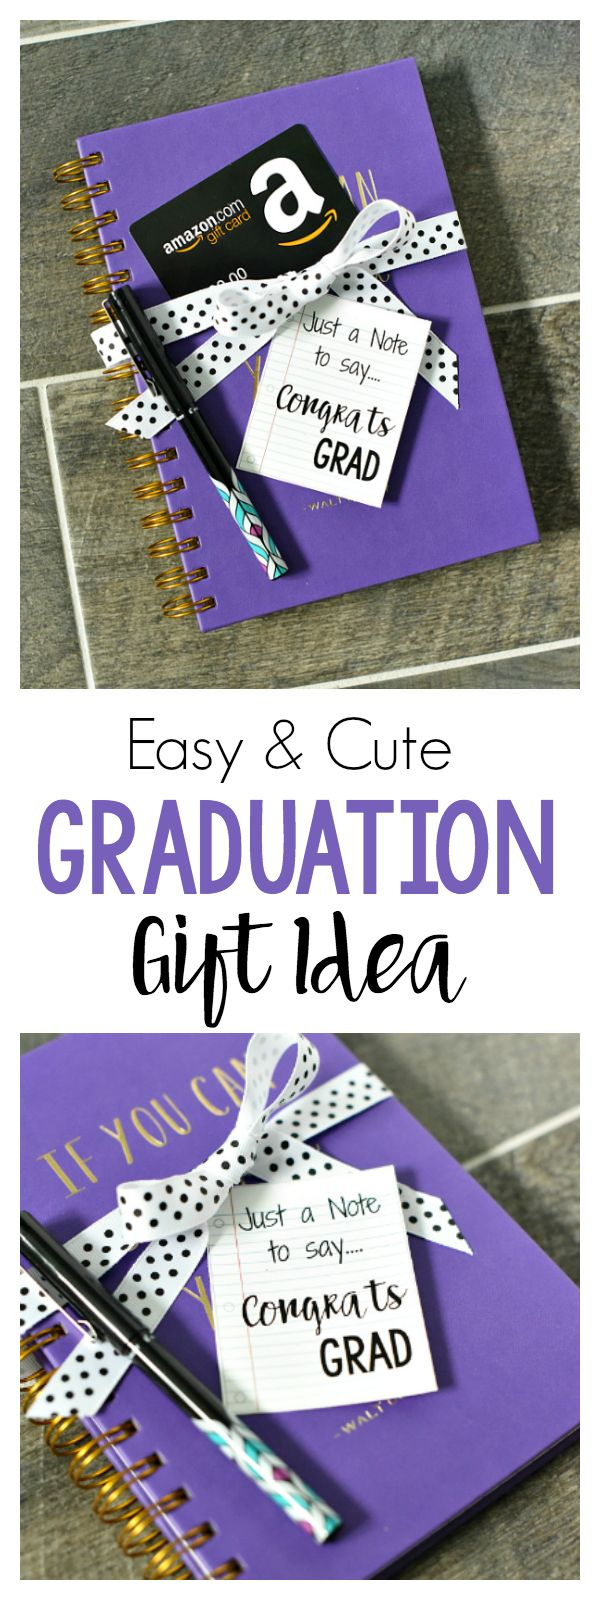 Just a Note to Say, Congrats Grad! Easy Graduation Gift Idea.  It's time to cong...